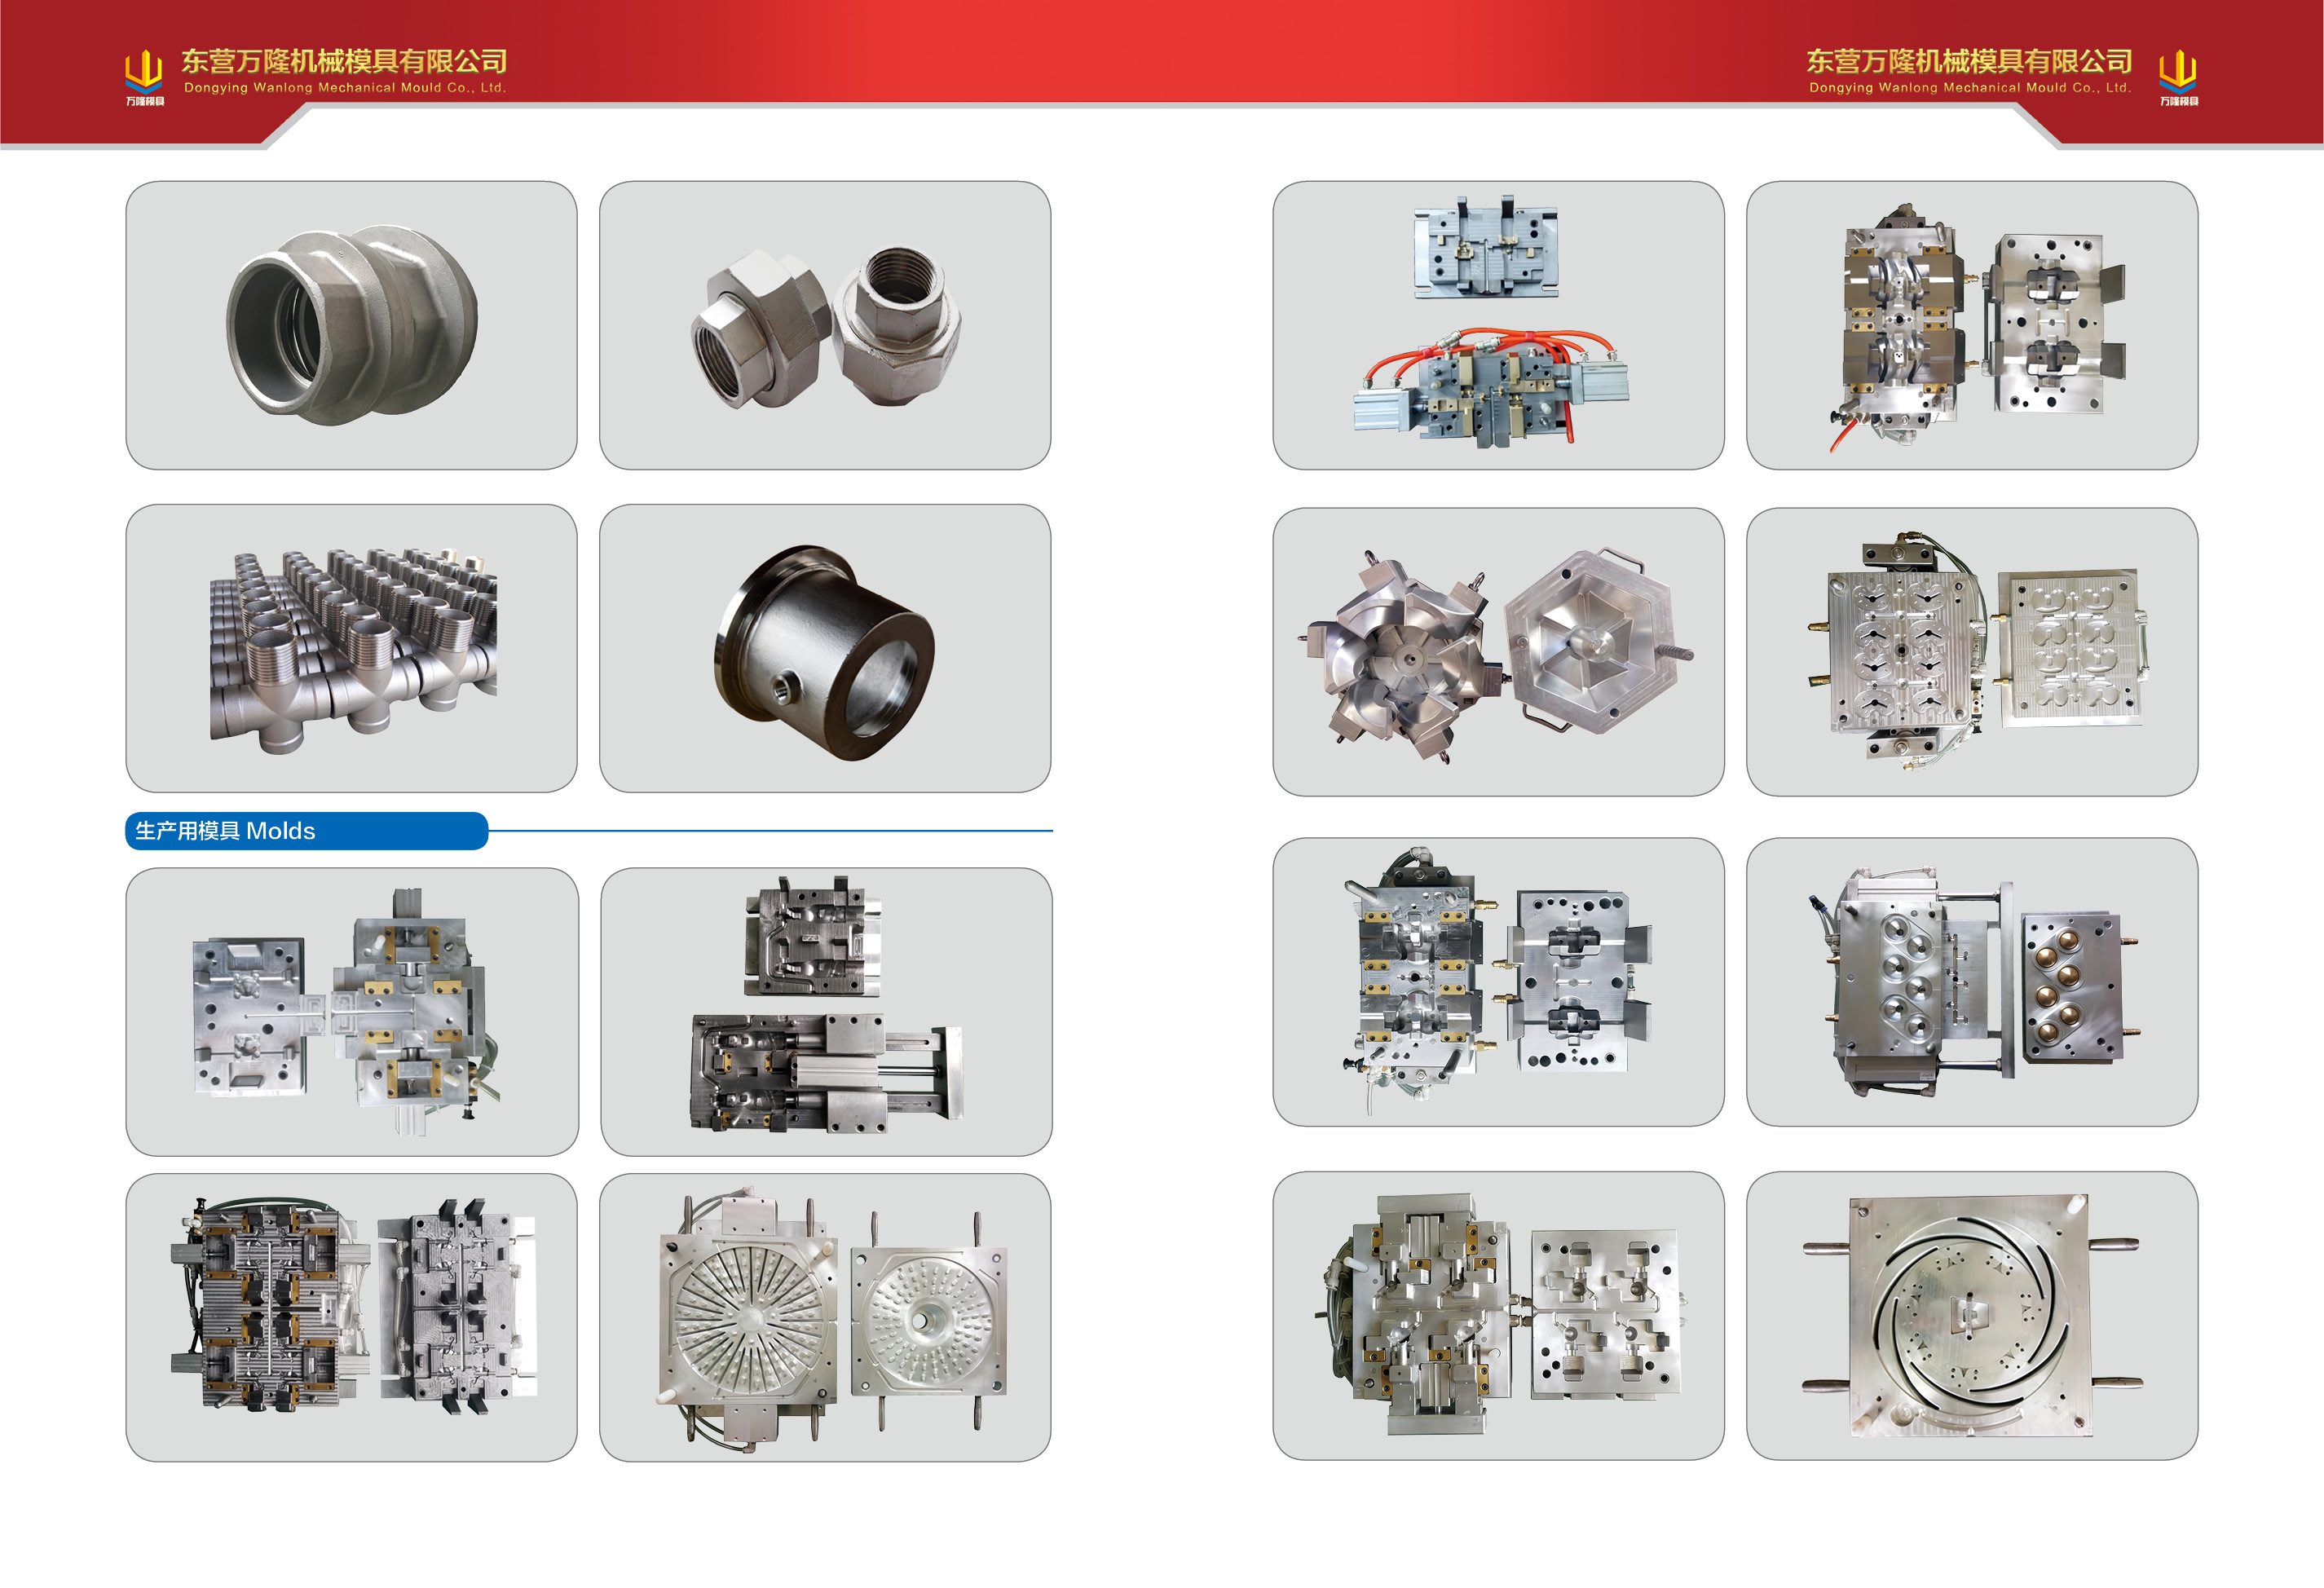 INVESMENT CASTINGS CASTED PARTS FOUNDRY CHINA DONGYING MECHANICAL AUTO PARTS